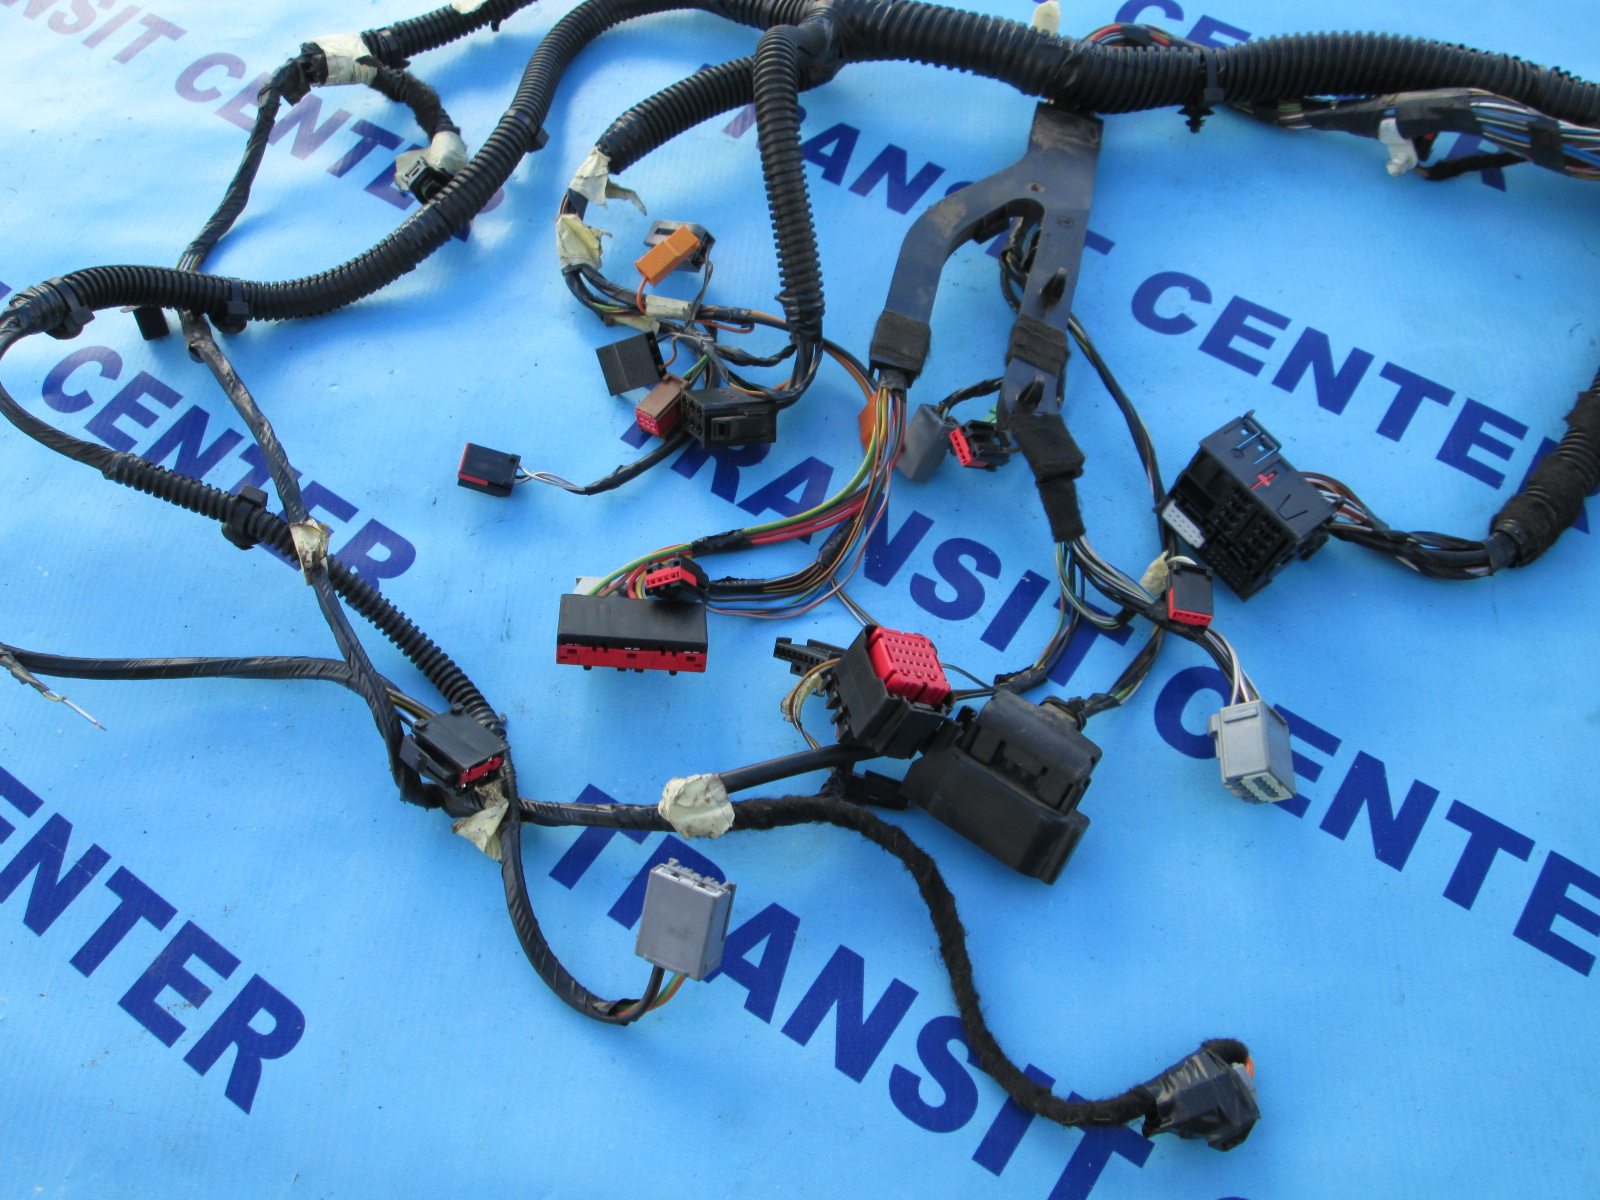 ford transit dashboard wiring loom 4472 2 dashboard wiring loom harness ford transit connect 2009, rhd 2013 ford transit connect wiring diagram at mifinder.co